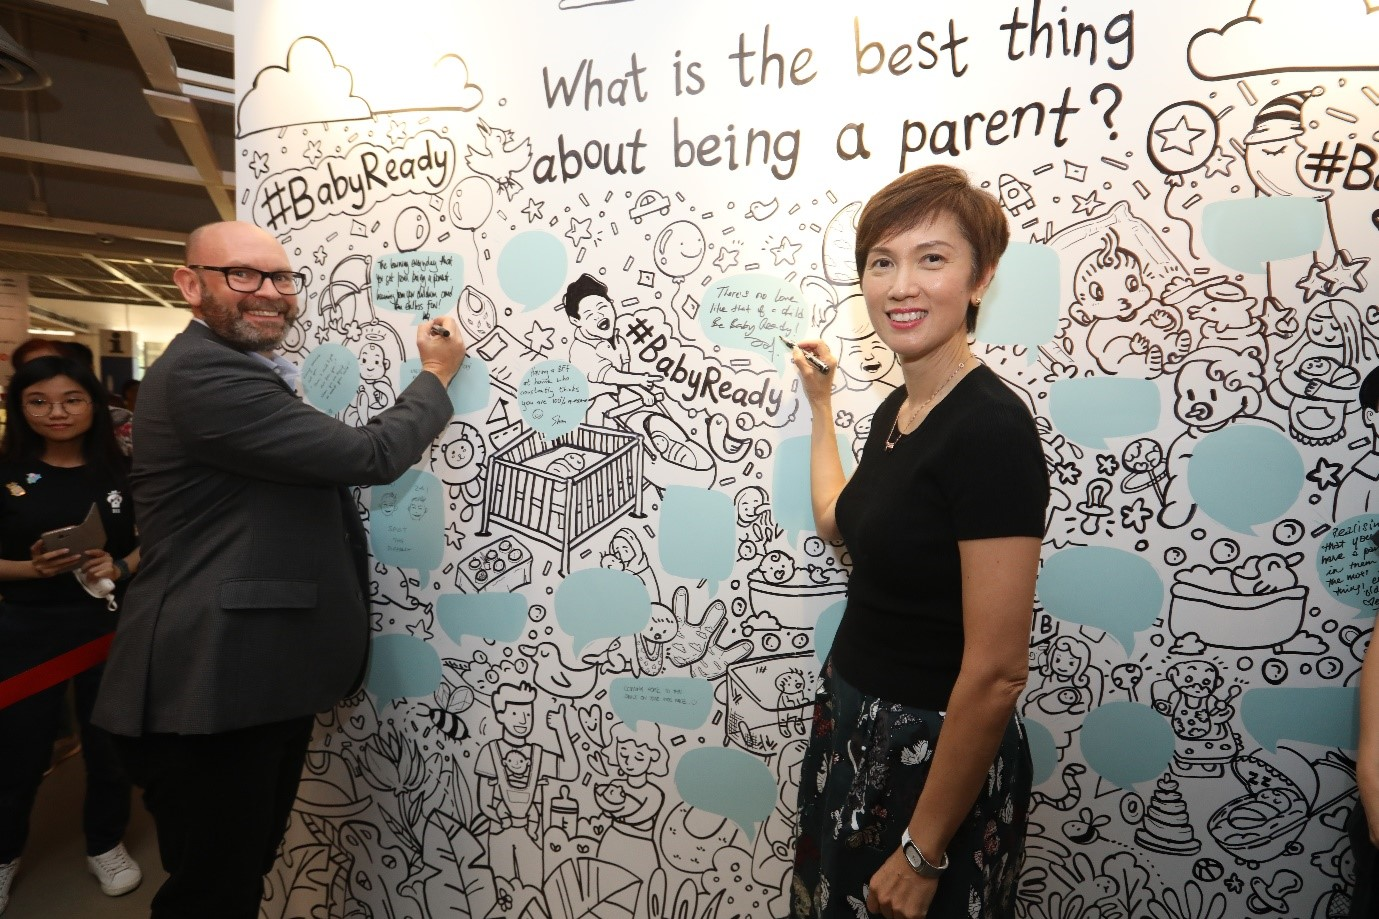 Minister Josephine Teo with IKEA Deputy Managing Director Mike King at the communal wall, where they penned their thoughts on the best thing about being a parent.